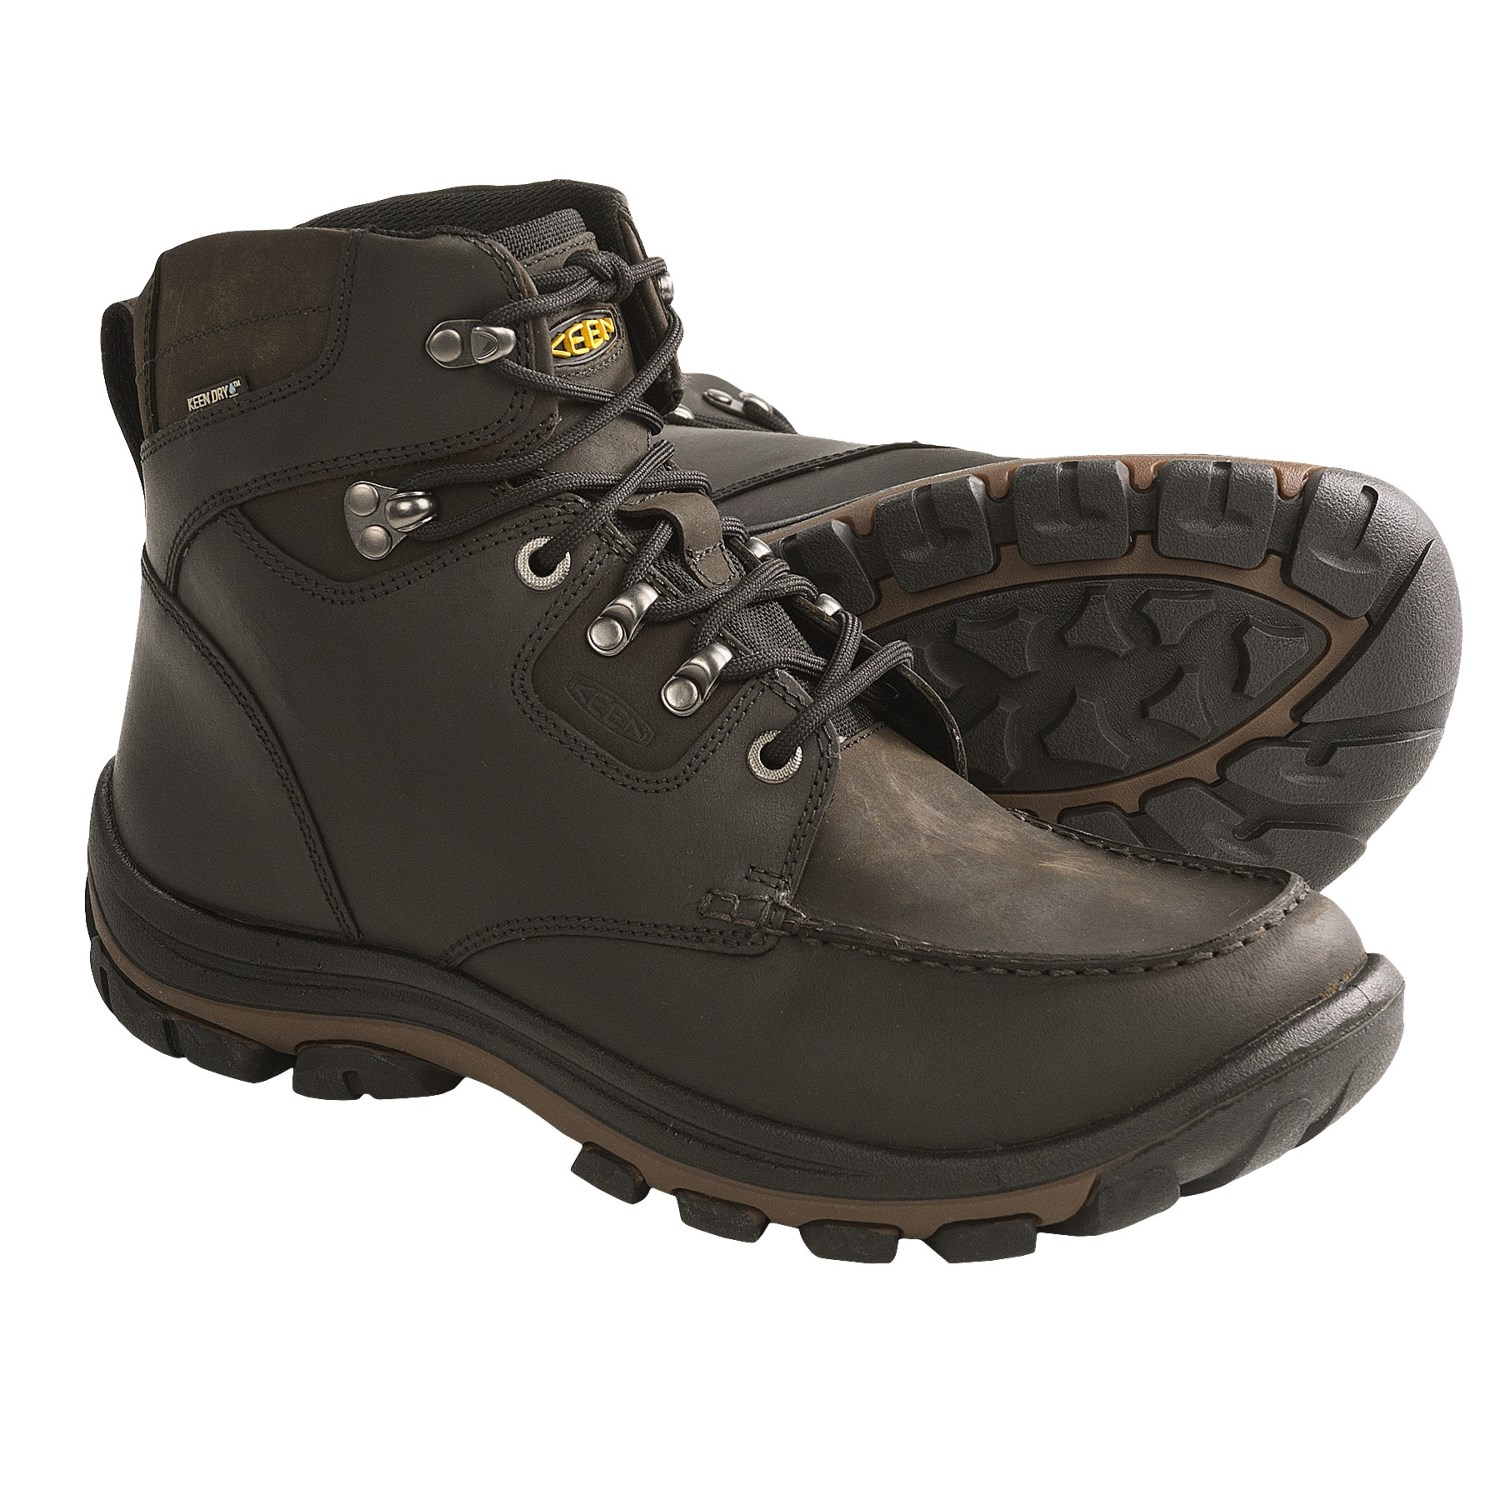 Aldo Boots Men Black Keen nopo boots - waterproof